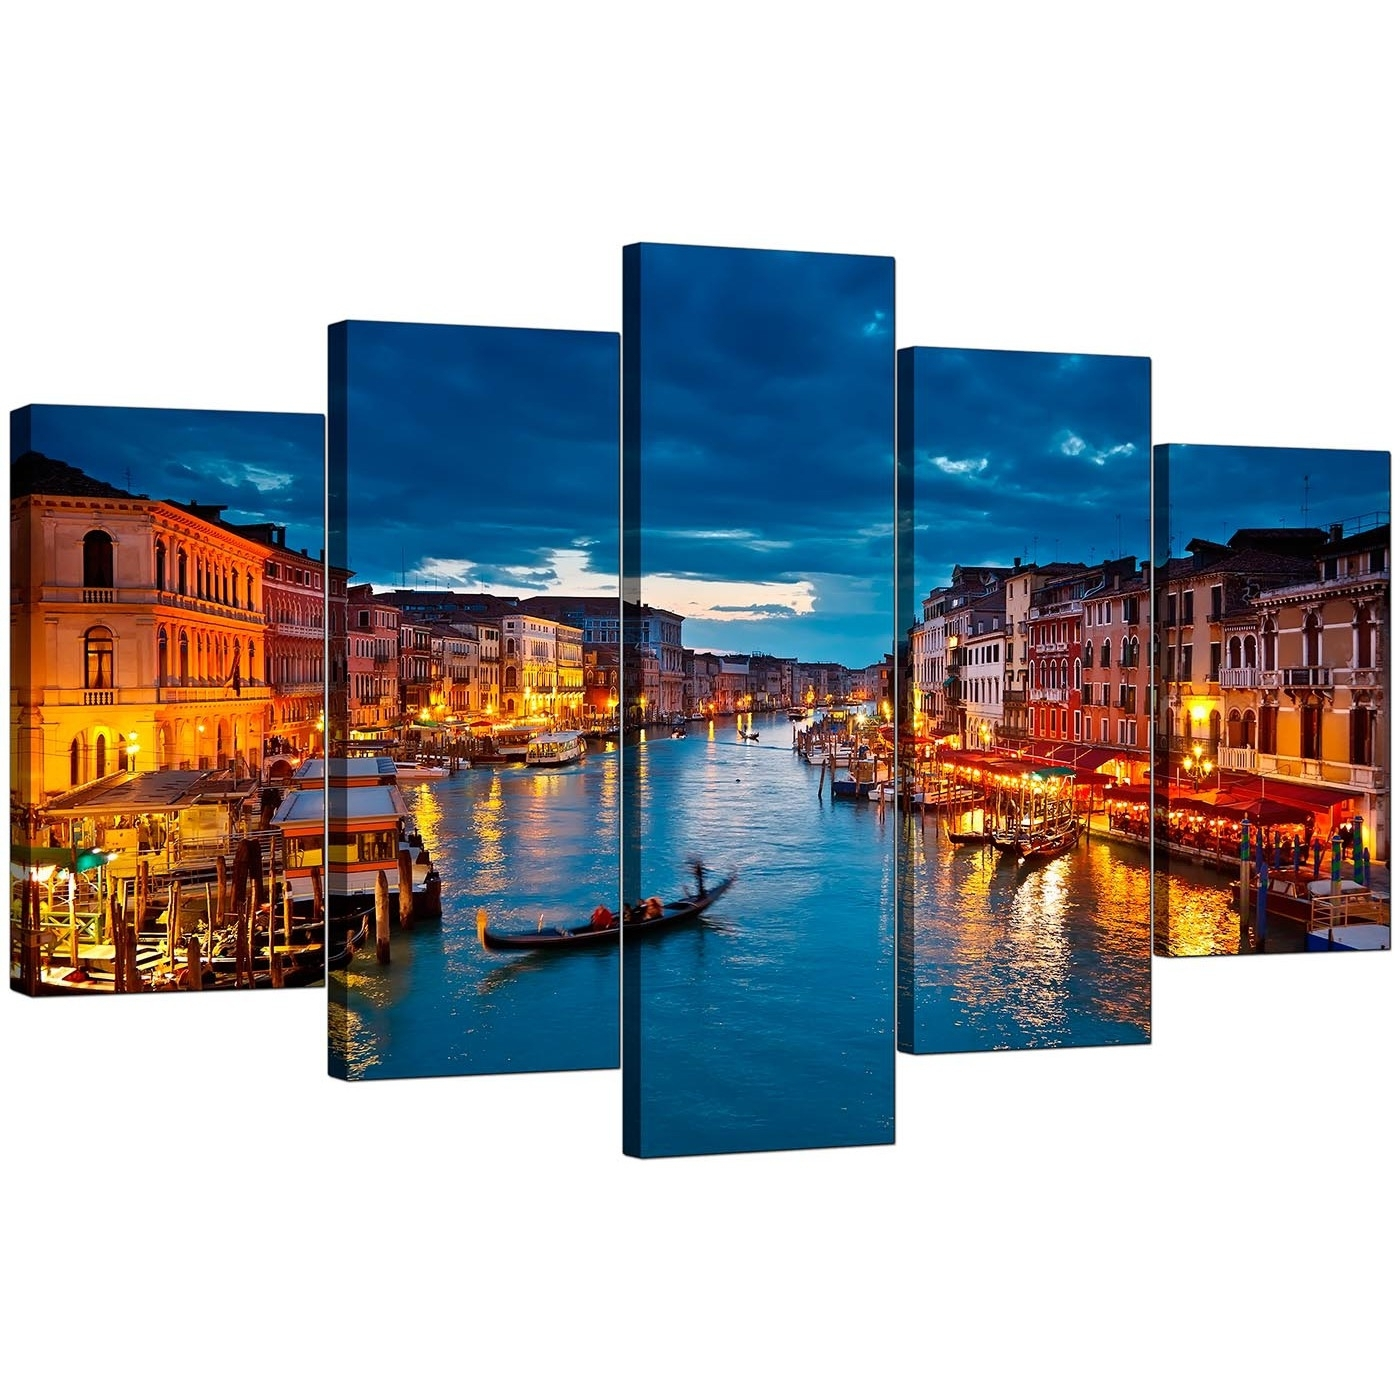 Venice Italy Canvas Prints For Your Living Room – 5 Panel With Regard To Recent Canvas Wall Art Of Italy (View 2 of 15)